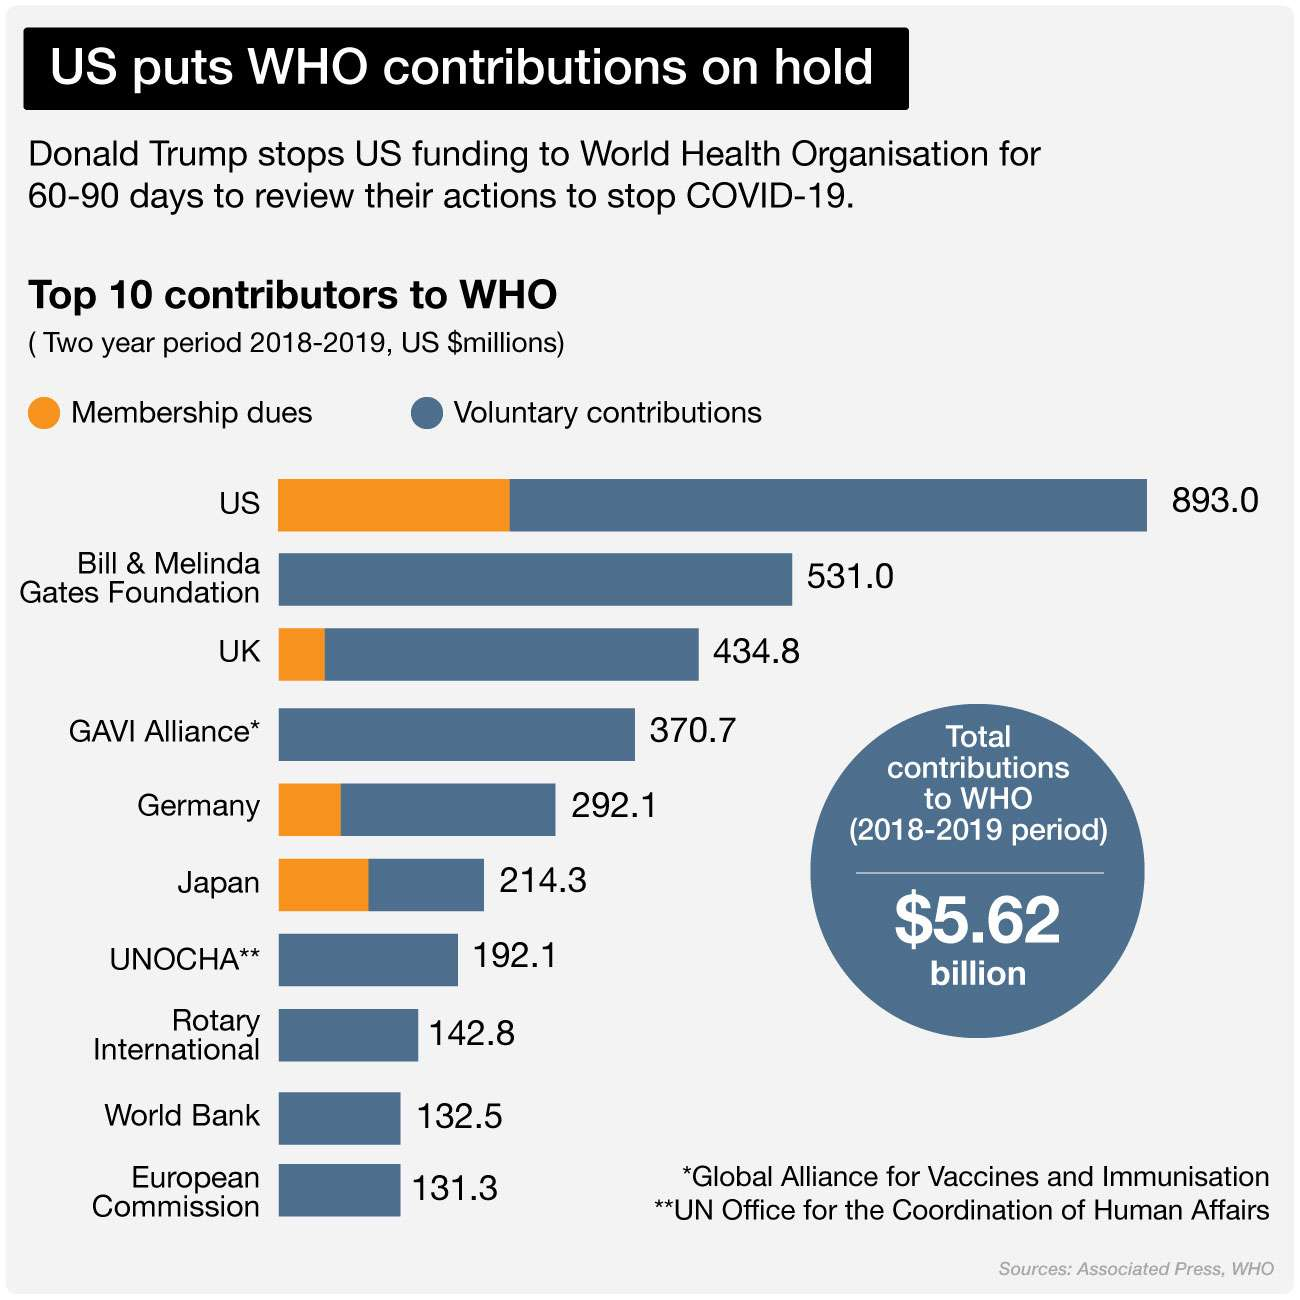 NED-1552-Top 10 contributors to WHO - 0